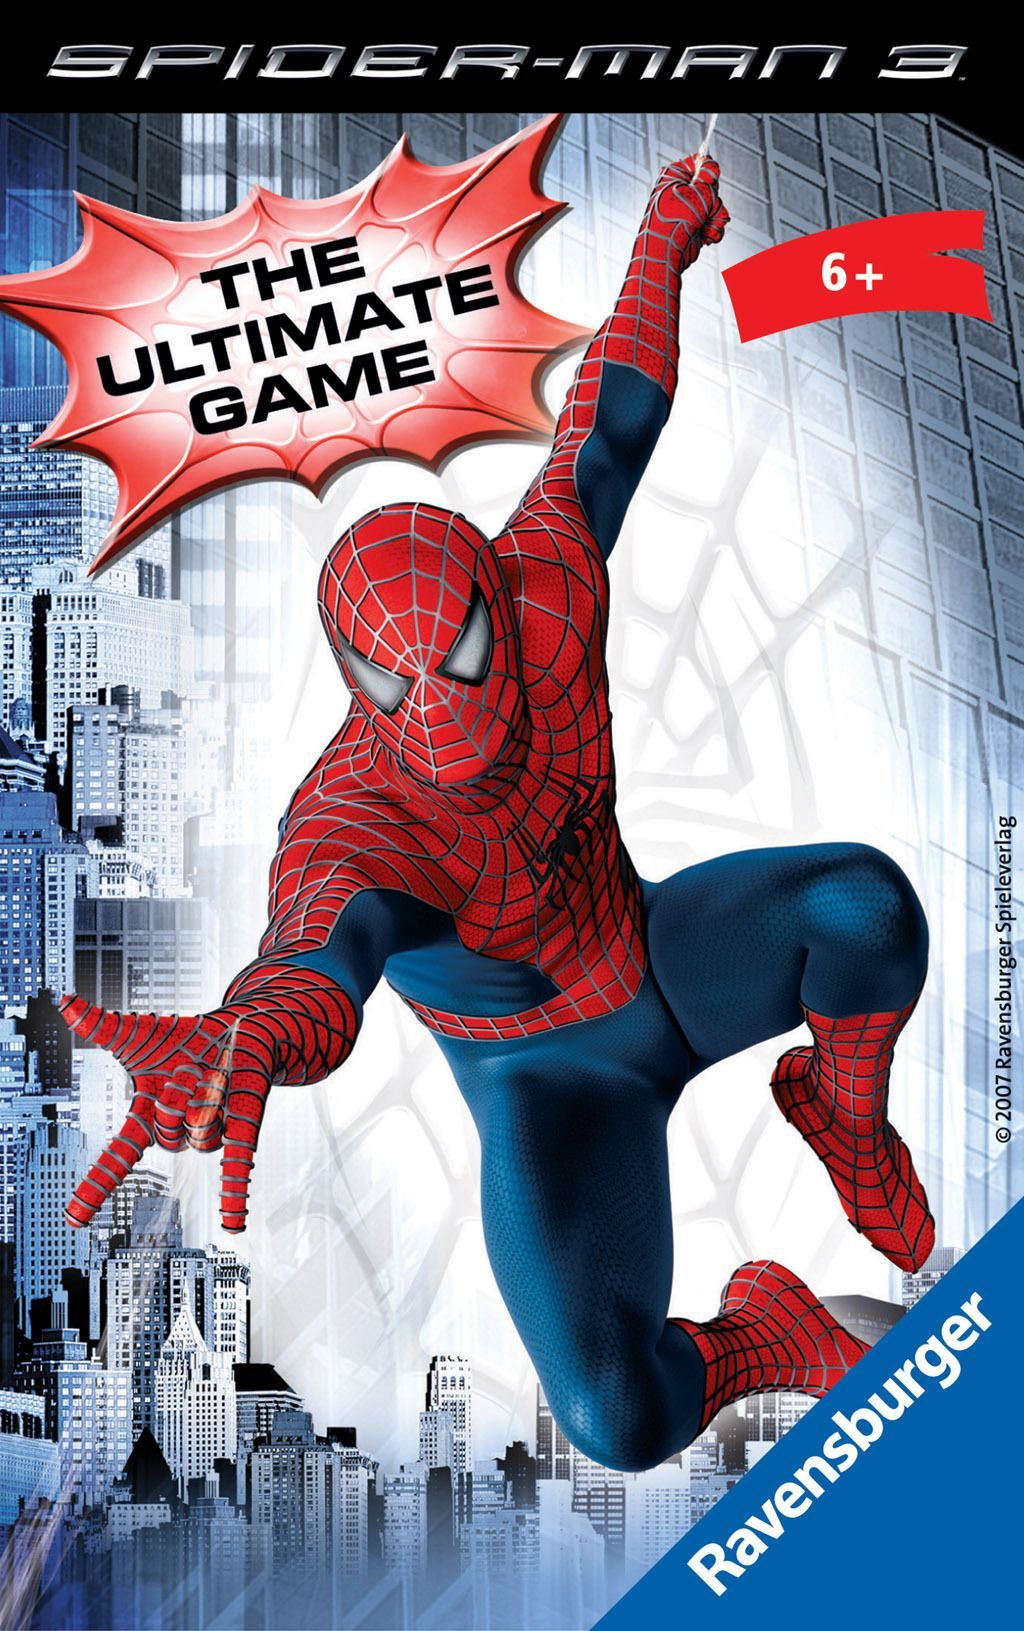 Spider-Man 3: The Ultimate Game